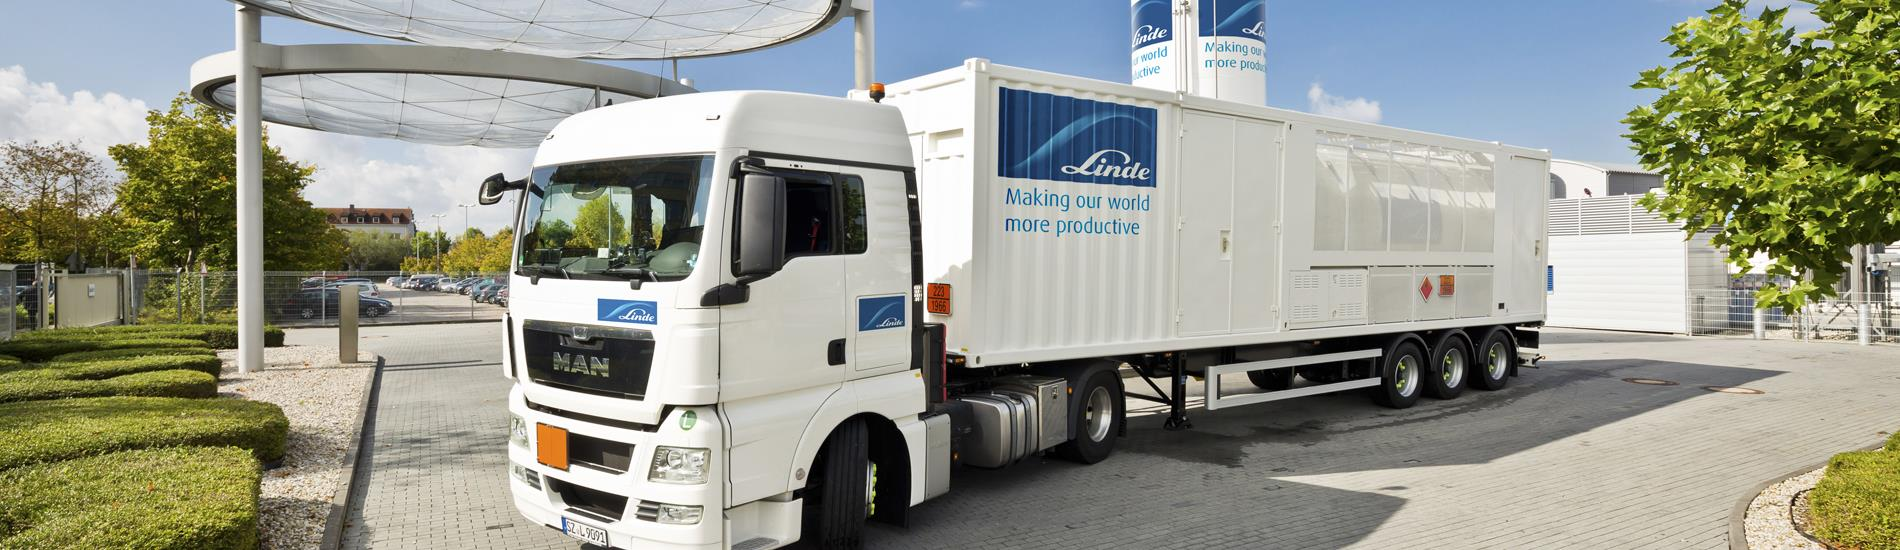 Linde Hydrogen trailer at Linde Hydrogen Center in Unterschleissheim, Germany